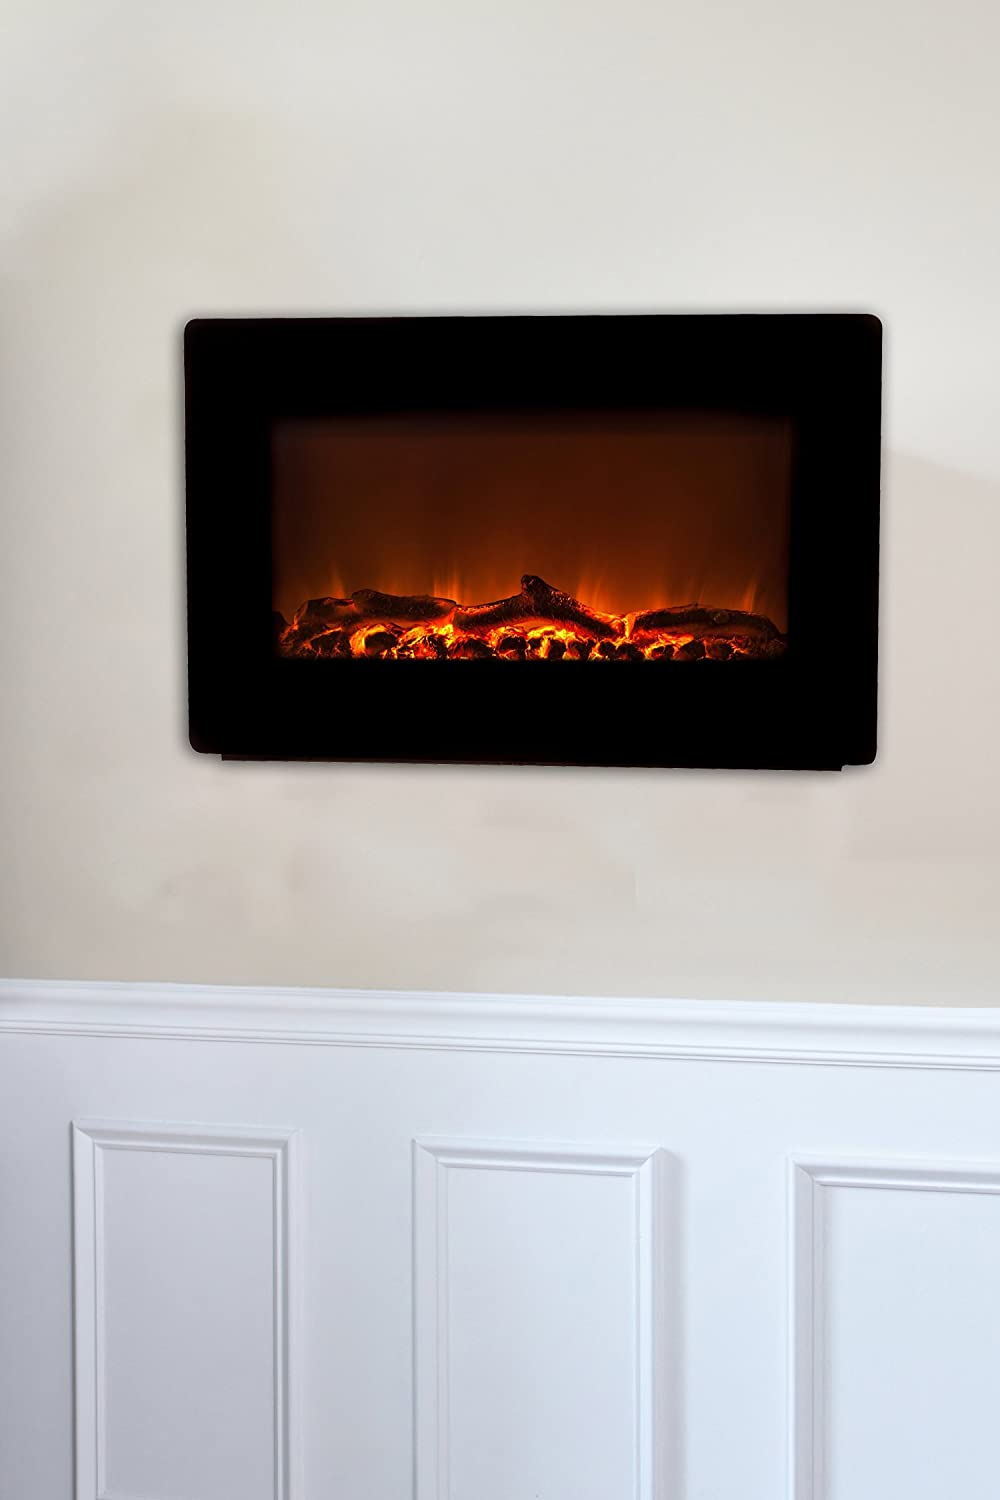 Amazon.com: Fire Sense Black Wall Mounted Electric Fireplace: Home ...